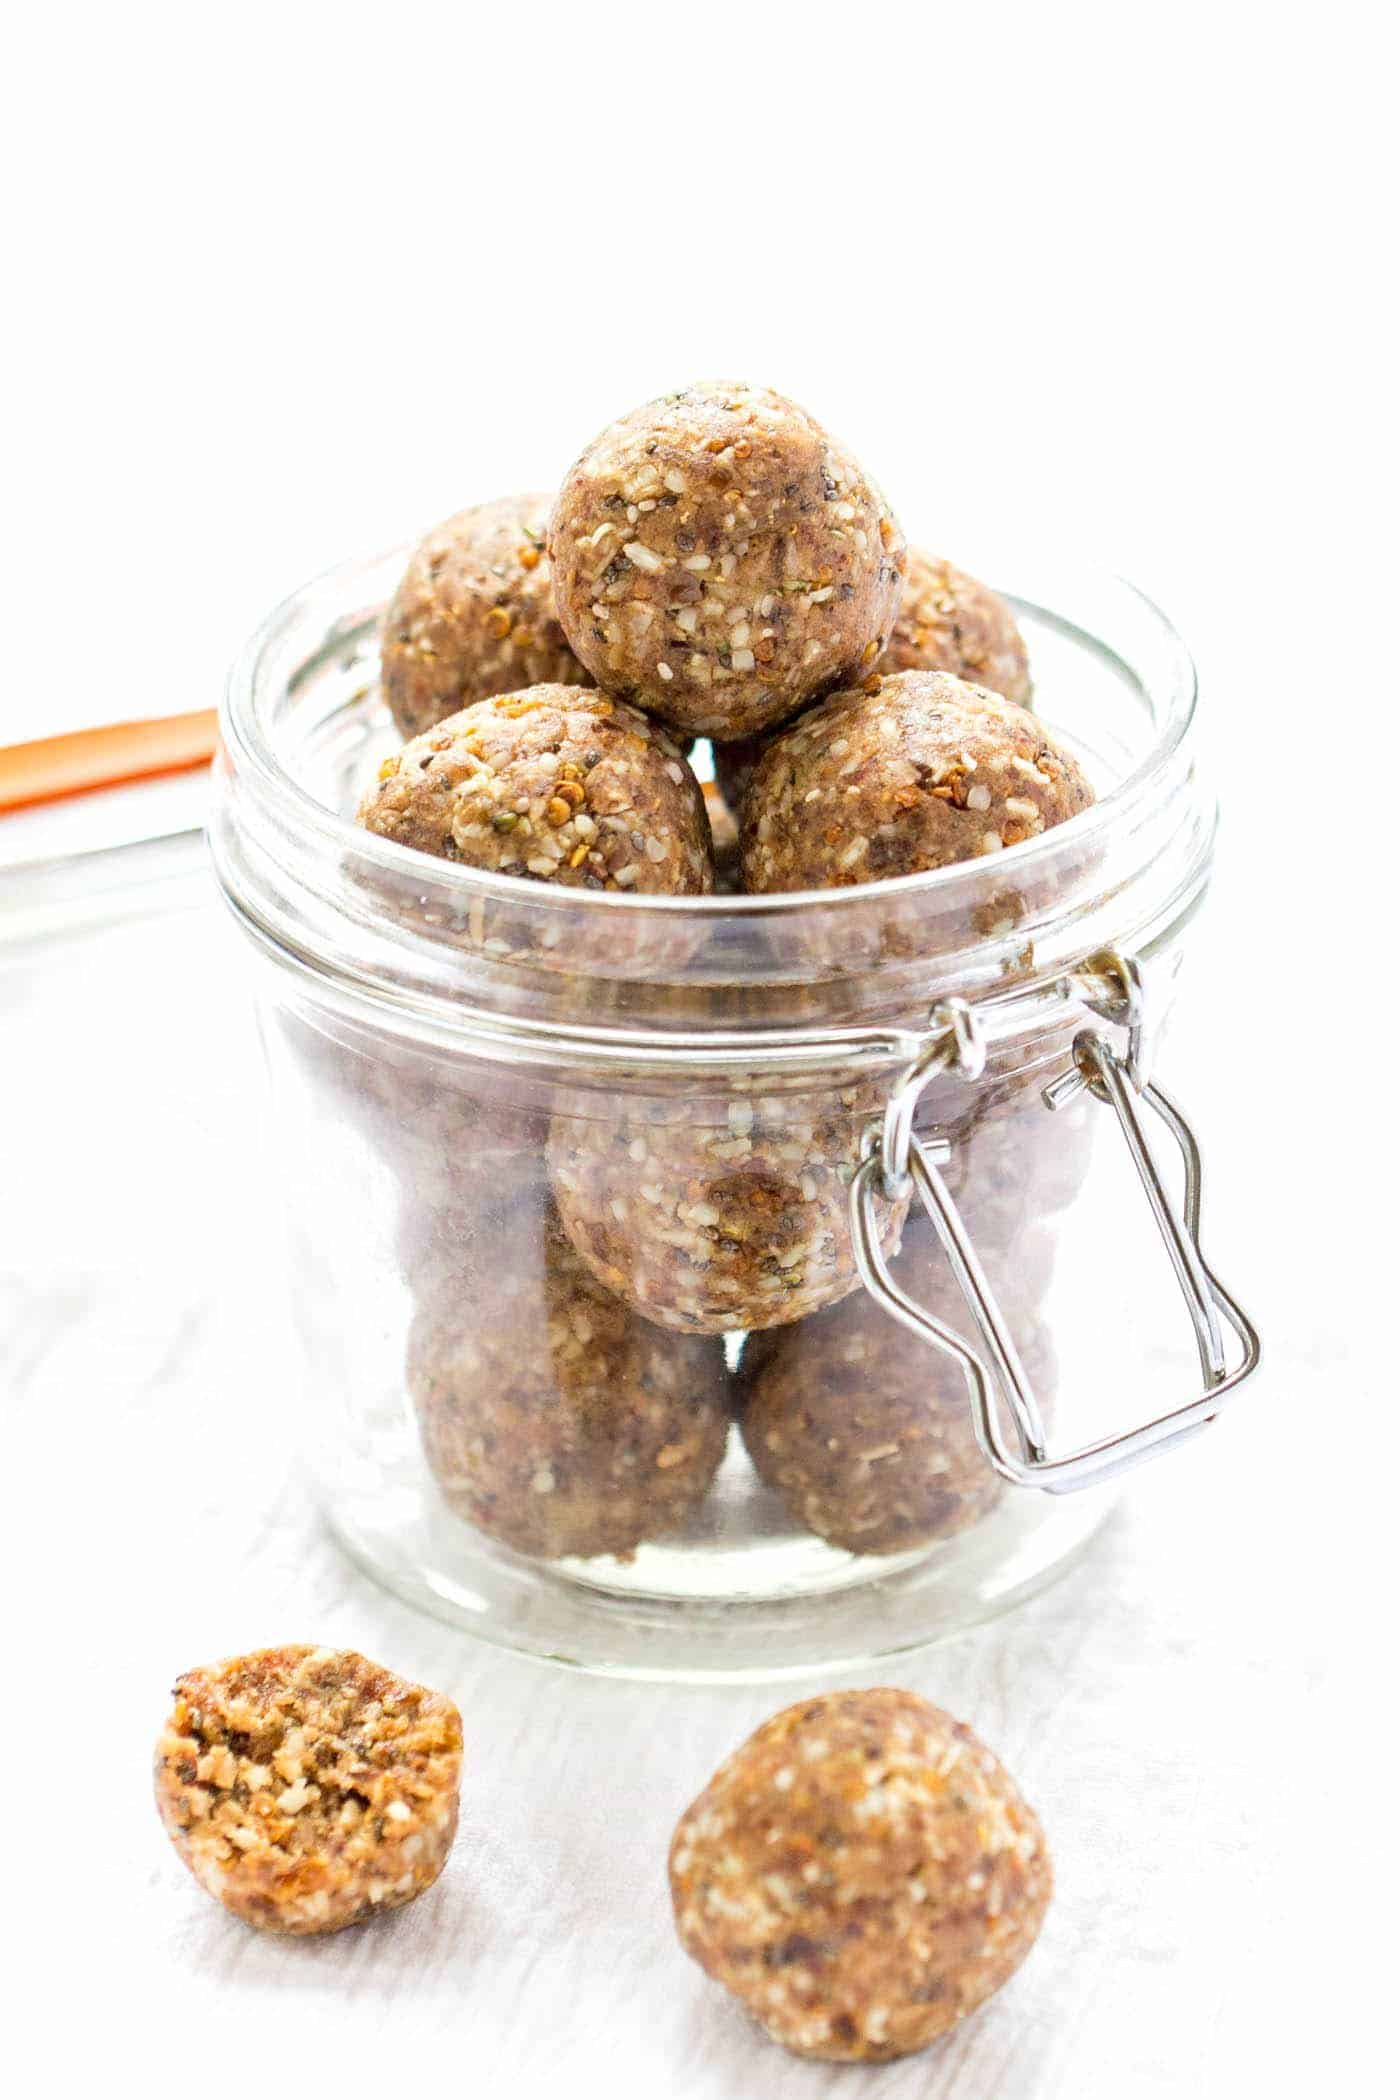 Super easy PROTEIN quinoa energy bites in a coconut-chai flavor. Perfect grab-and-go snack or for after a hard workout.